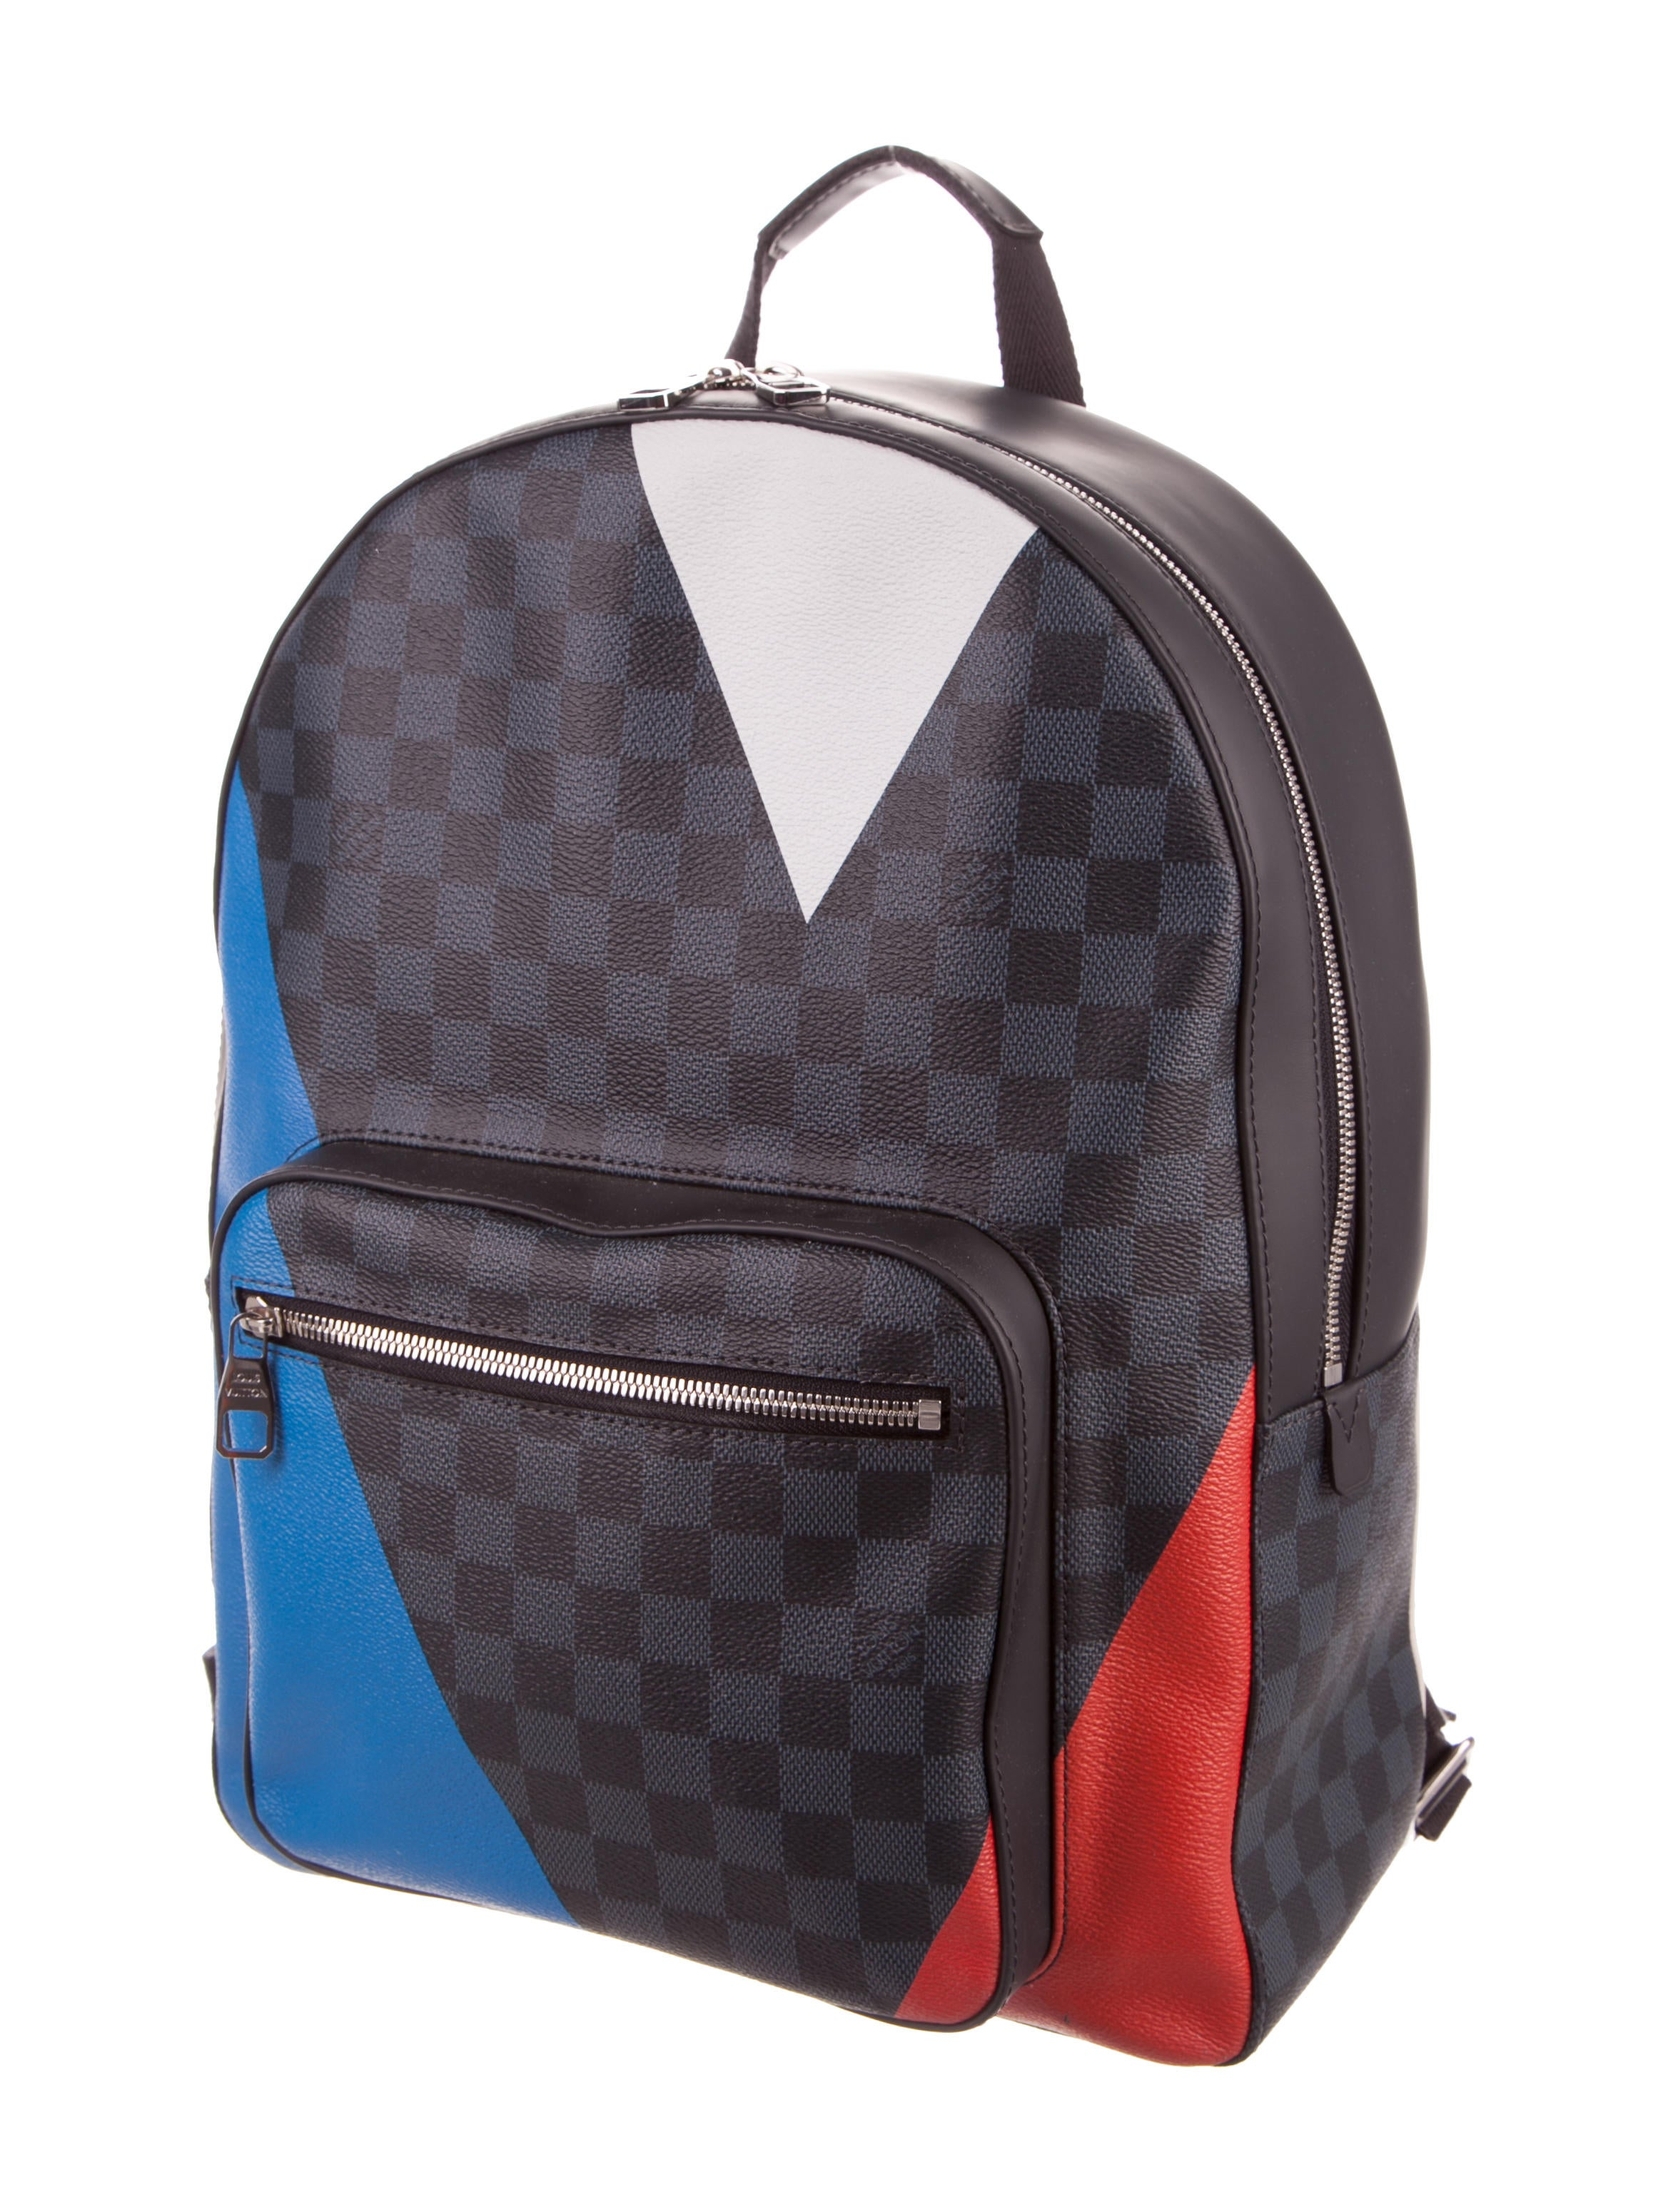 louis vuitton damier cobalt regatta josh backpack bags. Black Bedroom Furniture Sets. Home Design Ideas